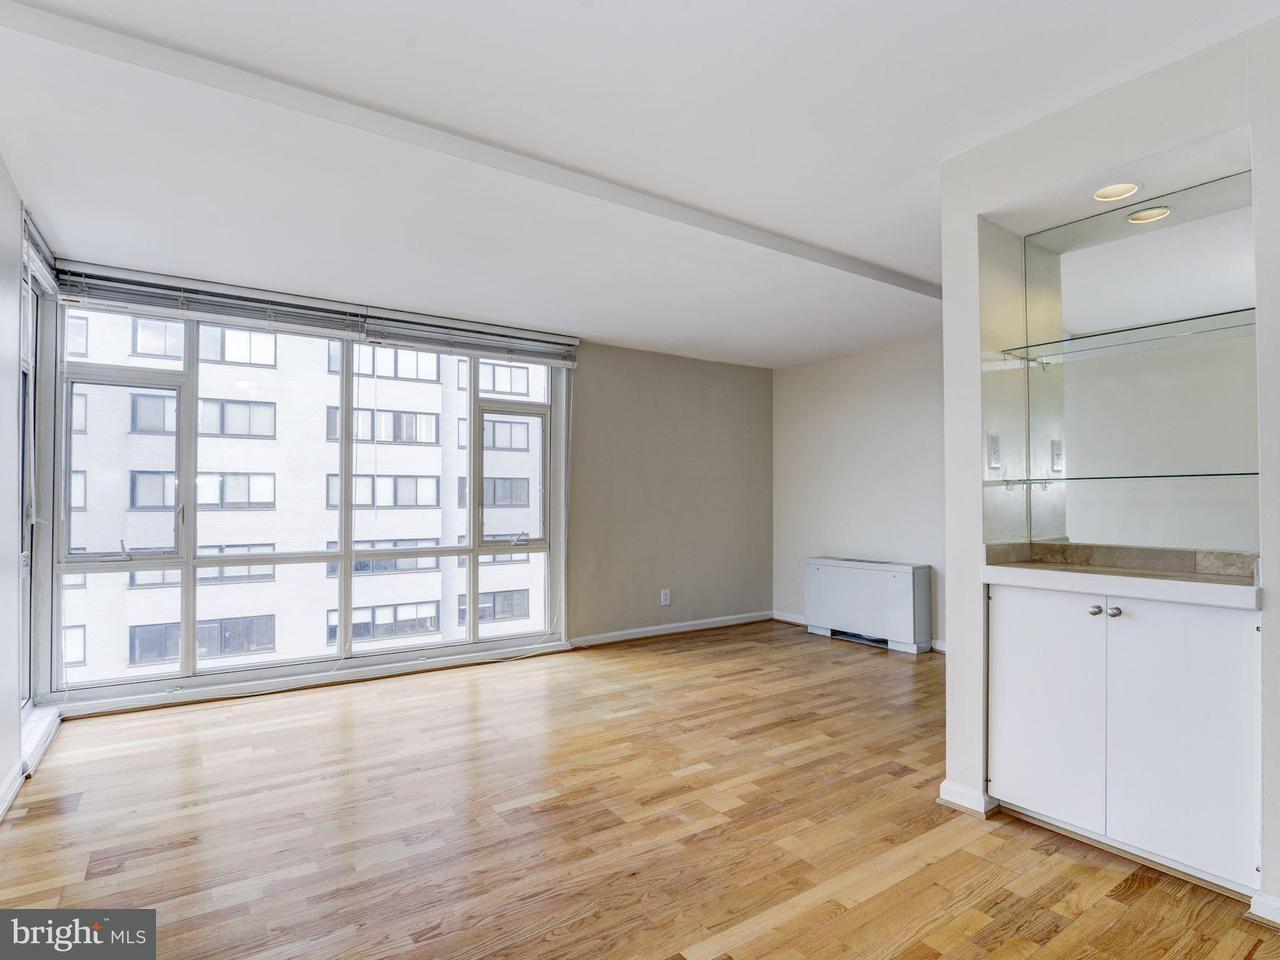 Condominium for Sale at 1545 18th St NW #801 Washington, District Of Columbia 20036 United States